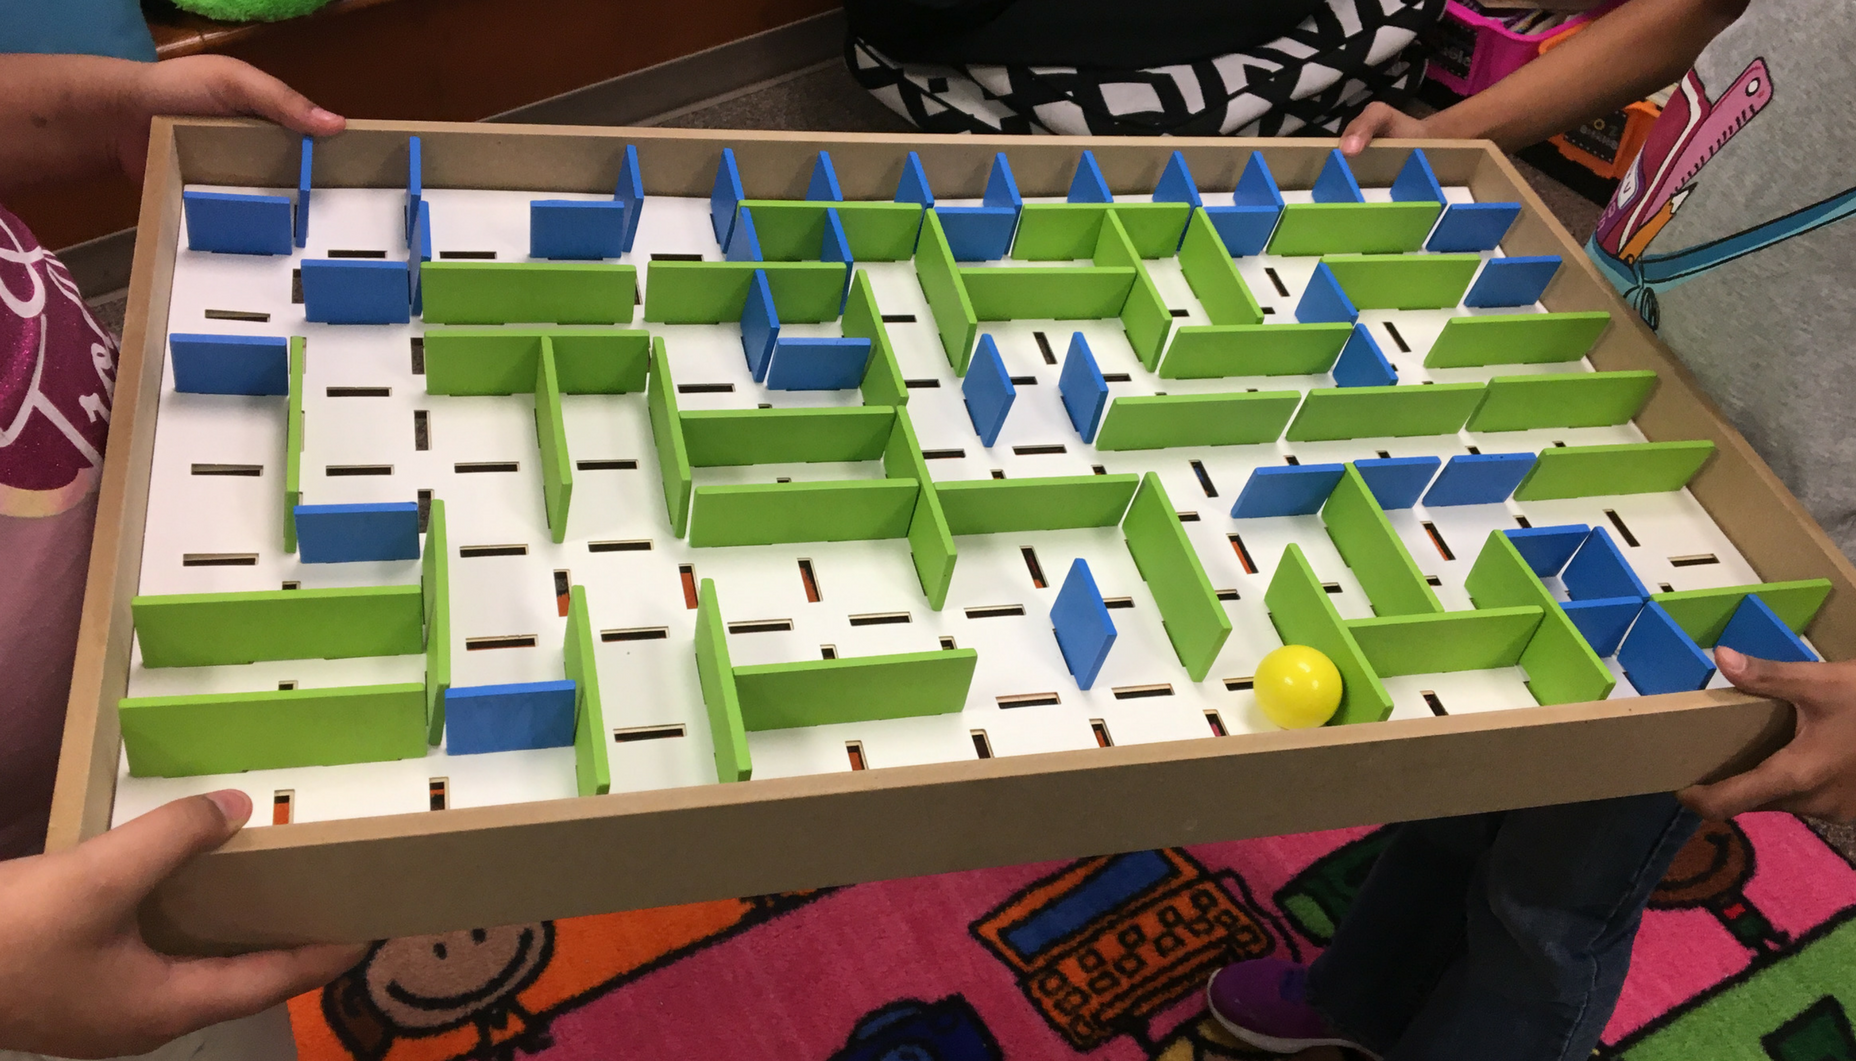 Help students learn to problem solve and communicate with this STEM Maze Activity.